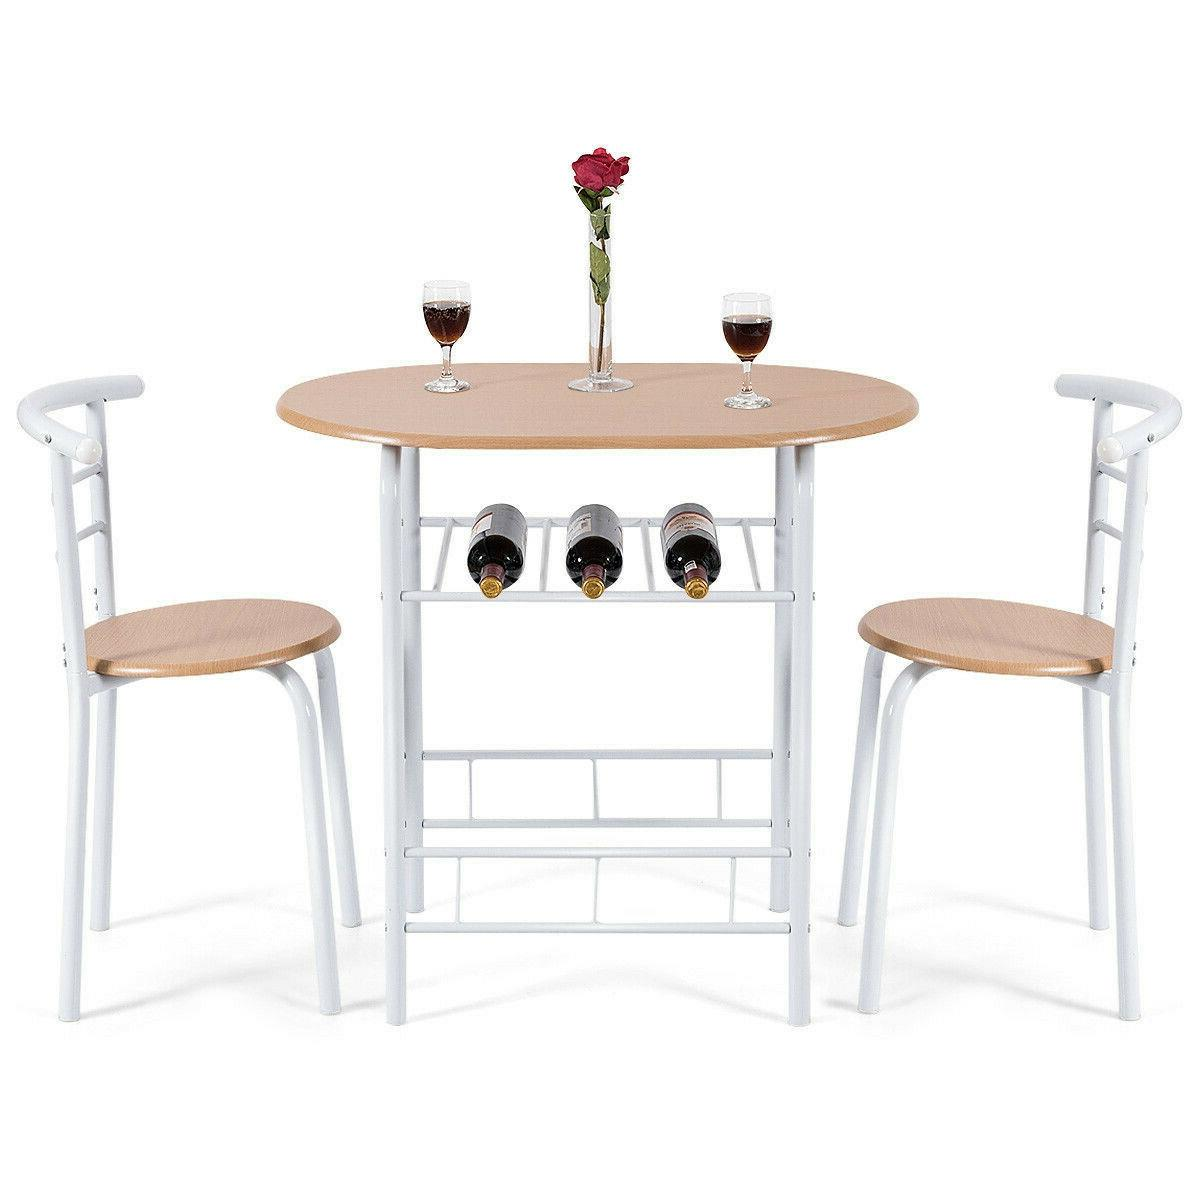 3 Bistro Pub Table 2 Chairs Set